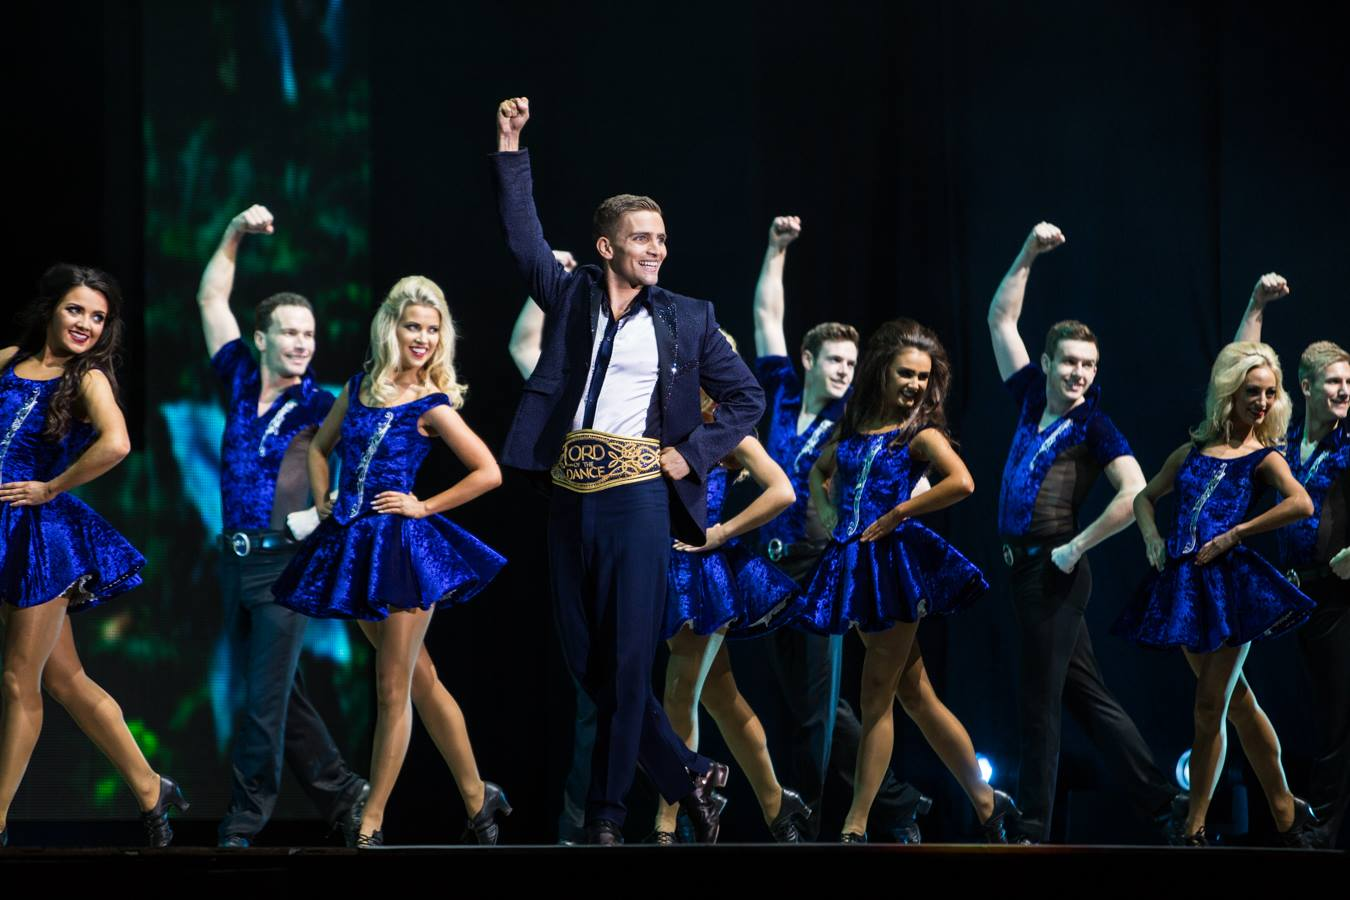 Lord of the Dance tour to stop in Okanagan - InfoNews.ca